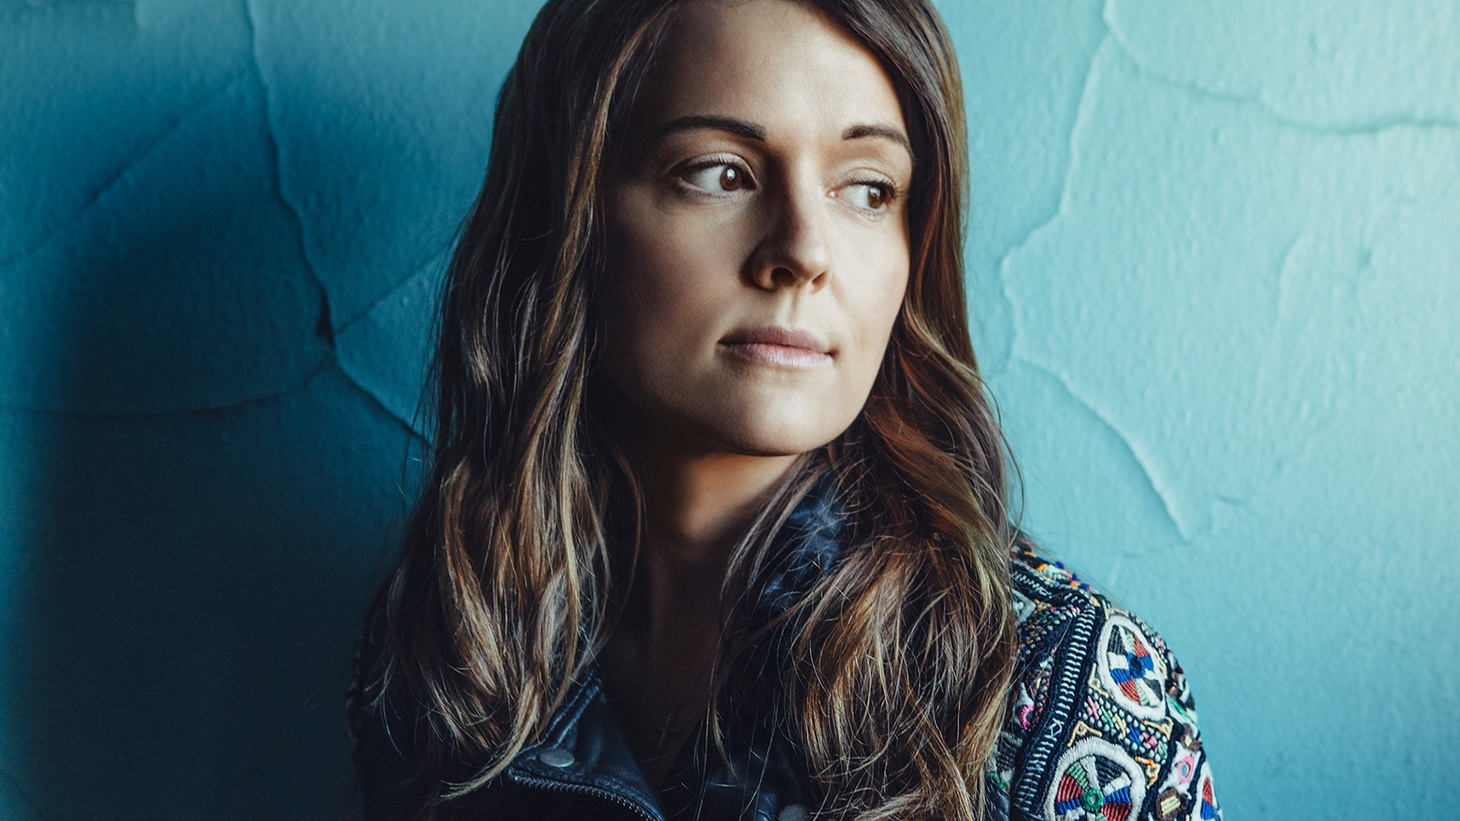 Seattle-based singer songwriter Brandi Carlile delivers honest moments of pure rock and roll wrapped in anthemic fist-beating melodies.